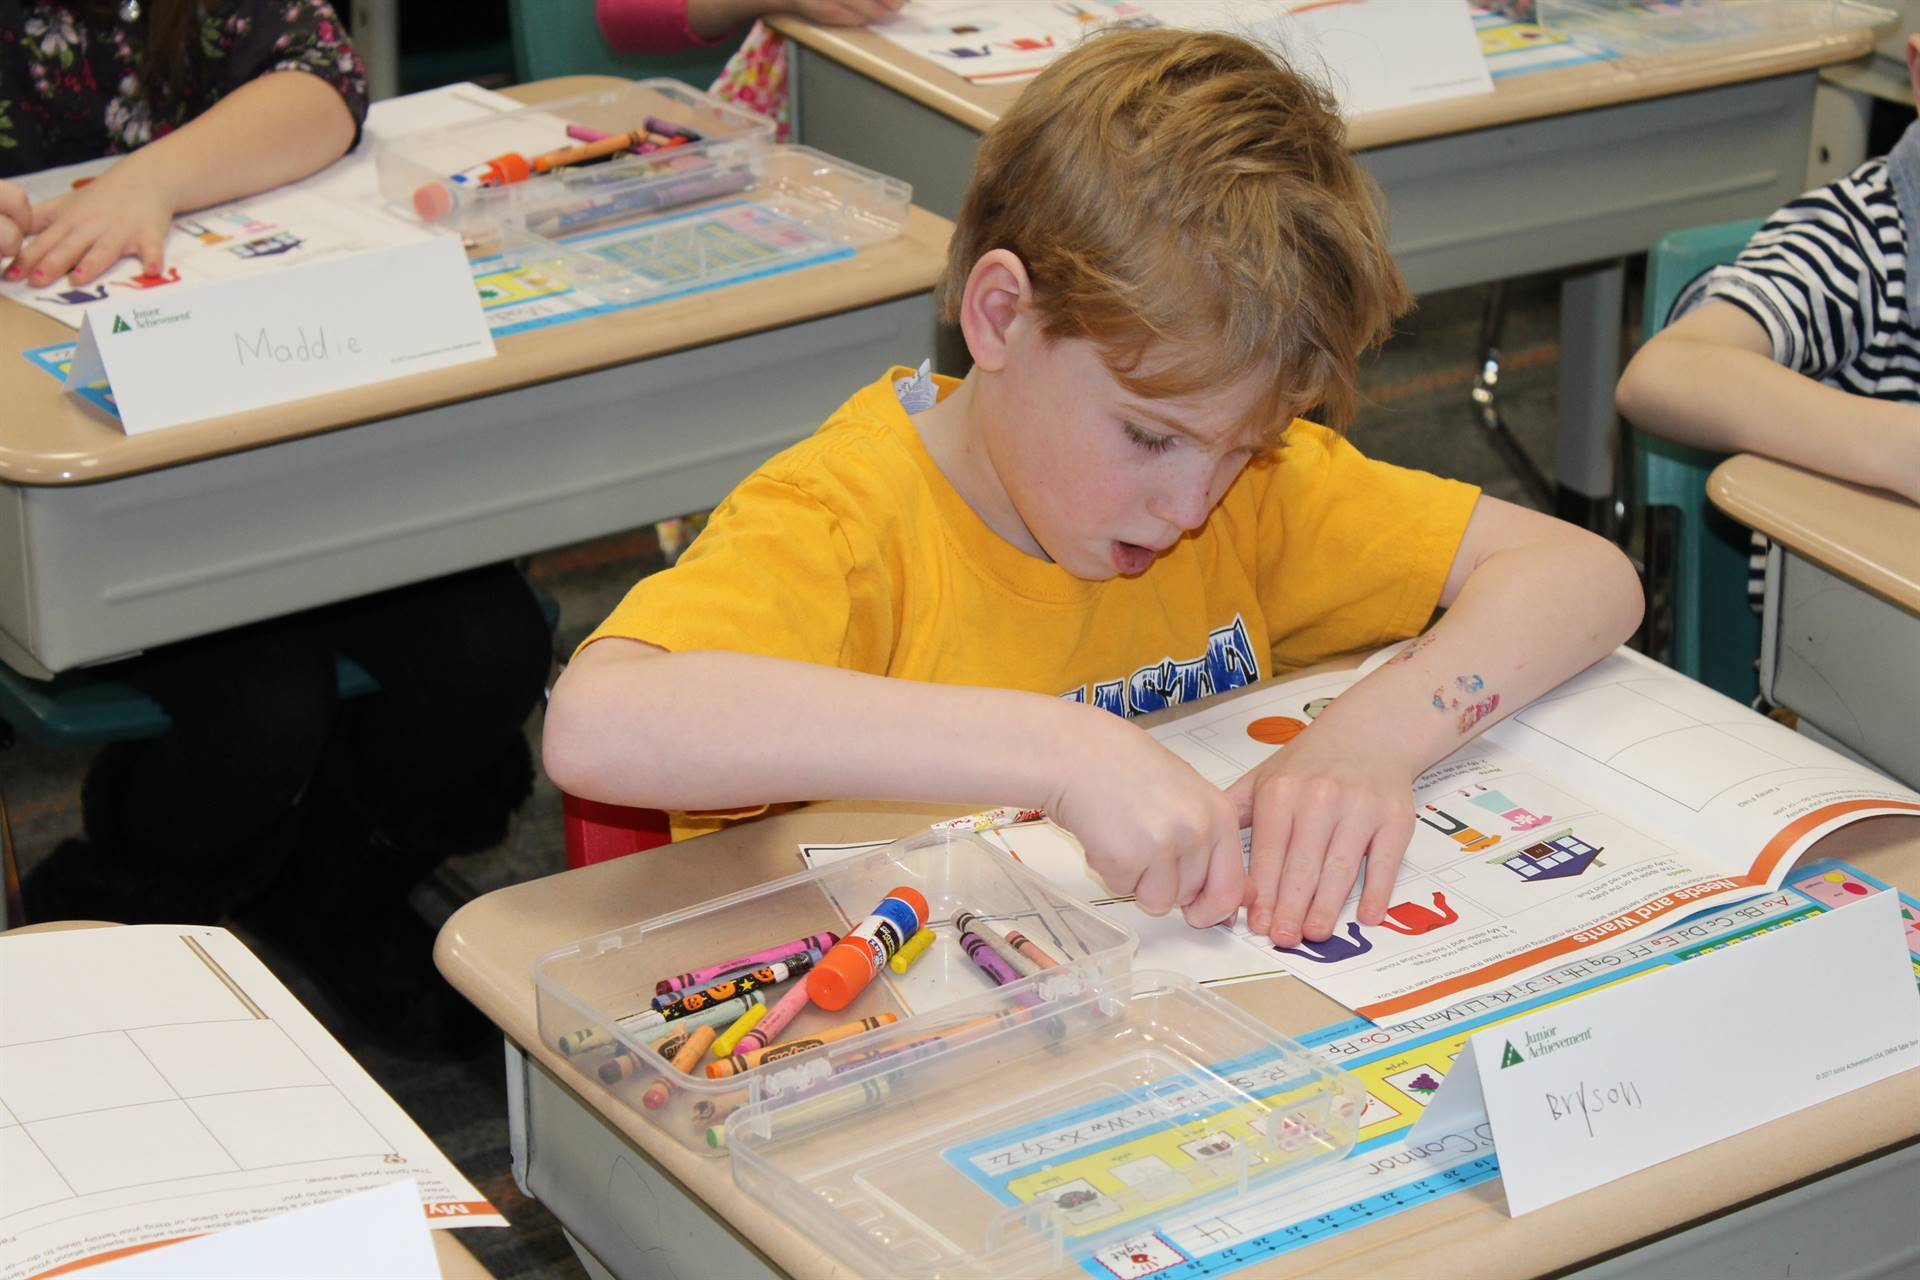 Franklin student putting a sticker in his work book